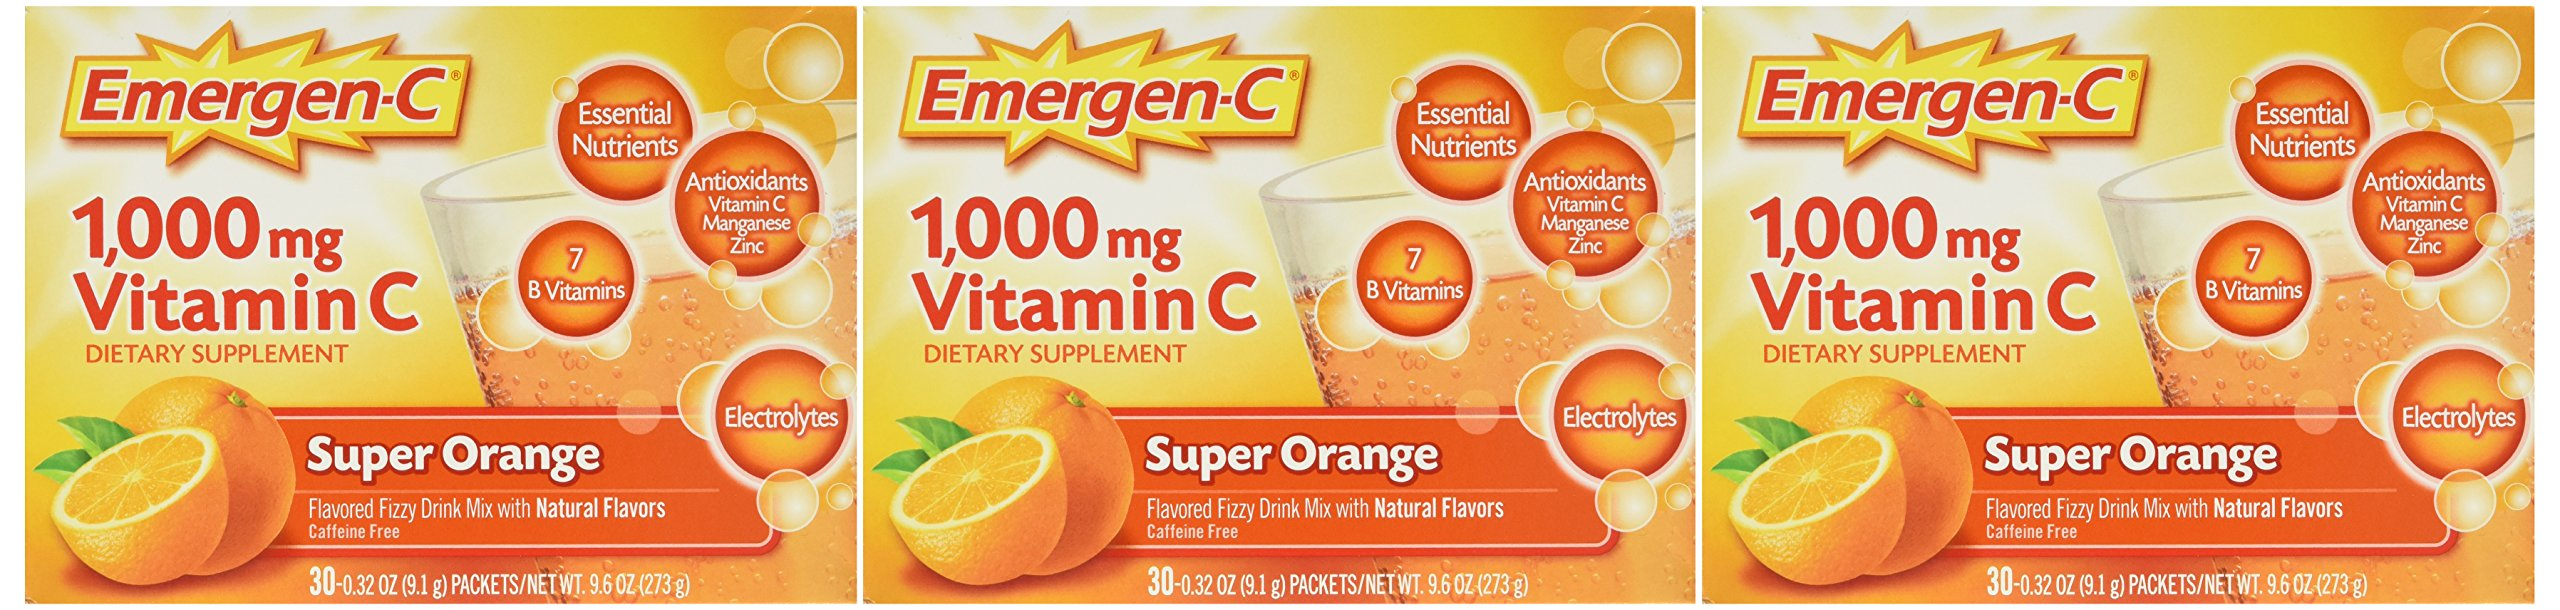 Emergen-C Vitamin C Fizzy Drink Mix, 1000 mg, Super Orange, 0.3 Ounce Packets 30 packets (Pack of 3)